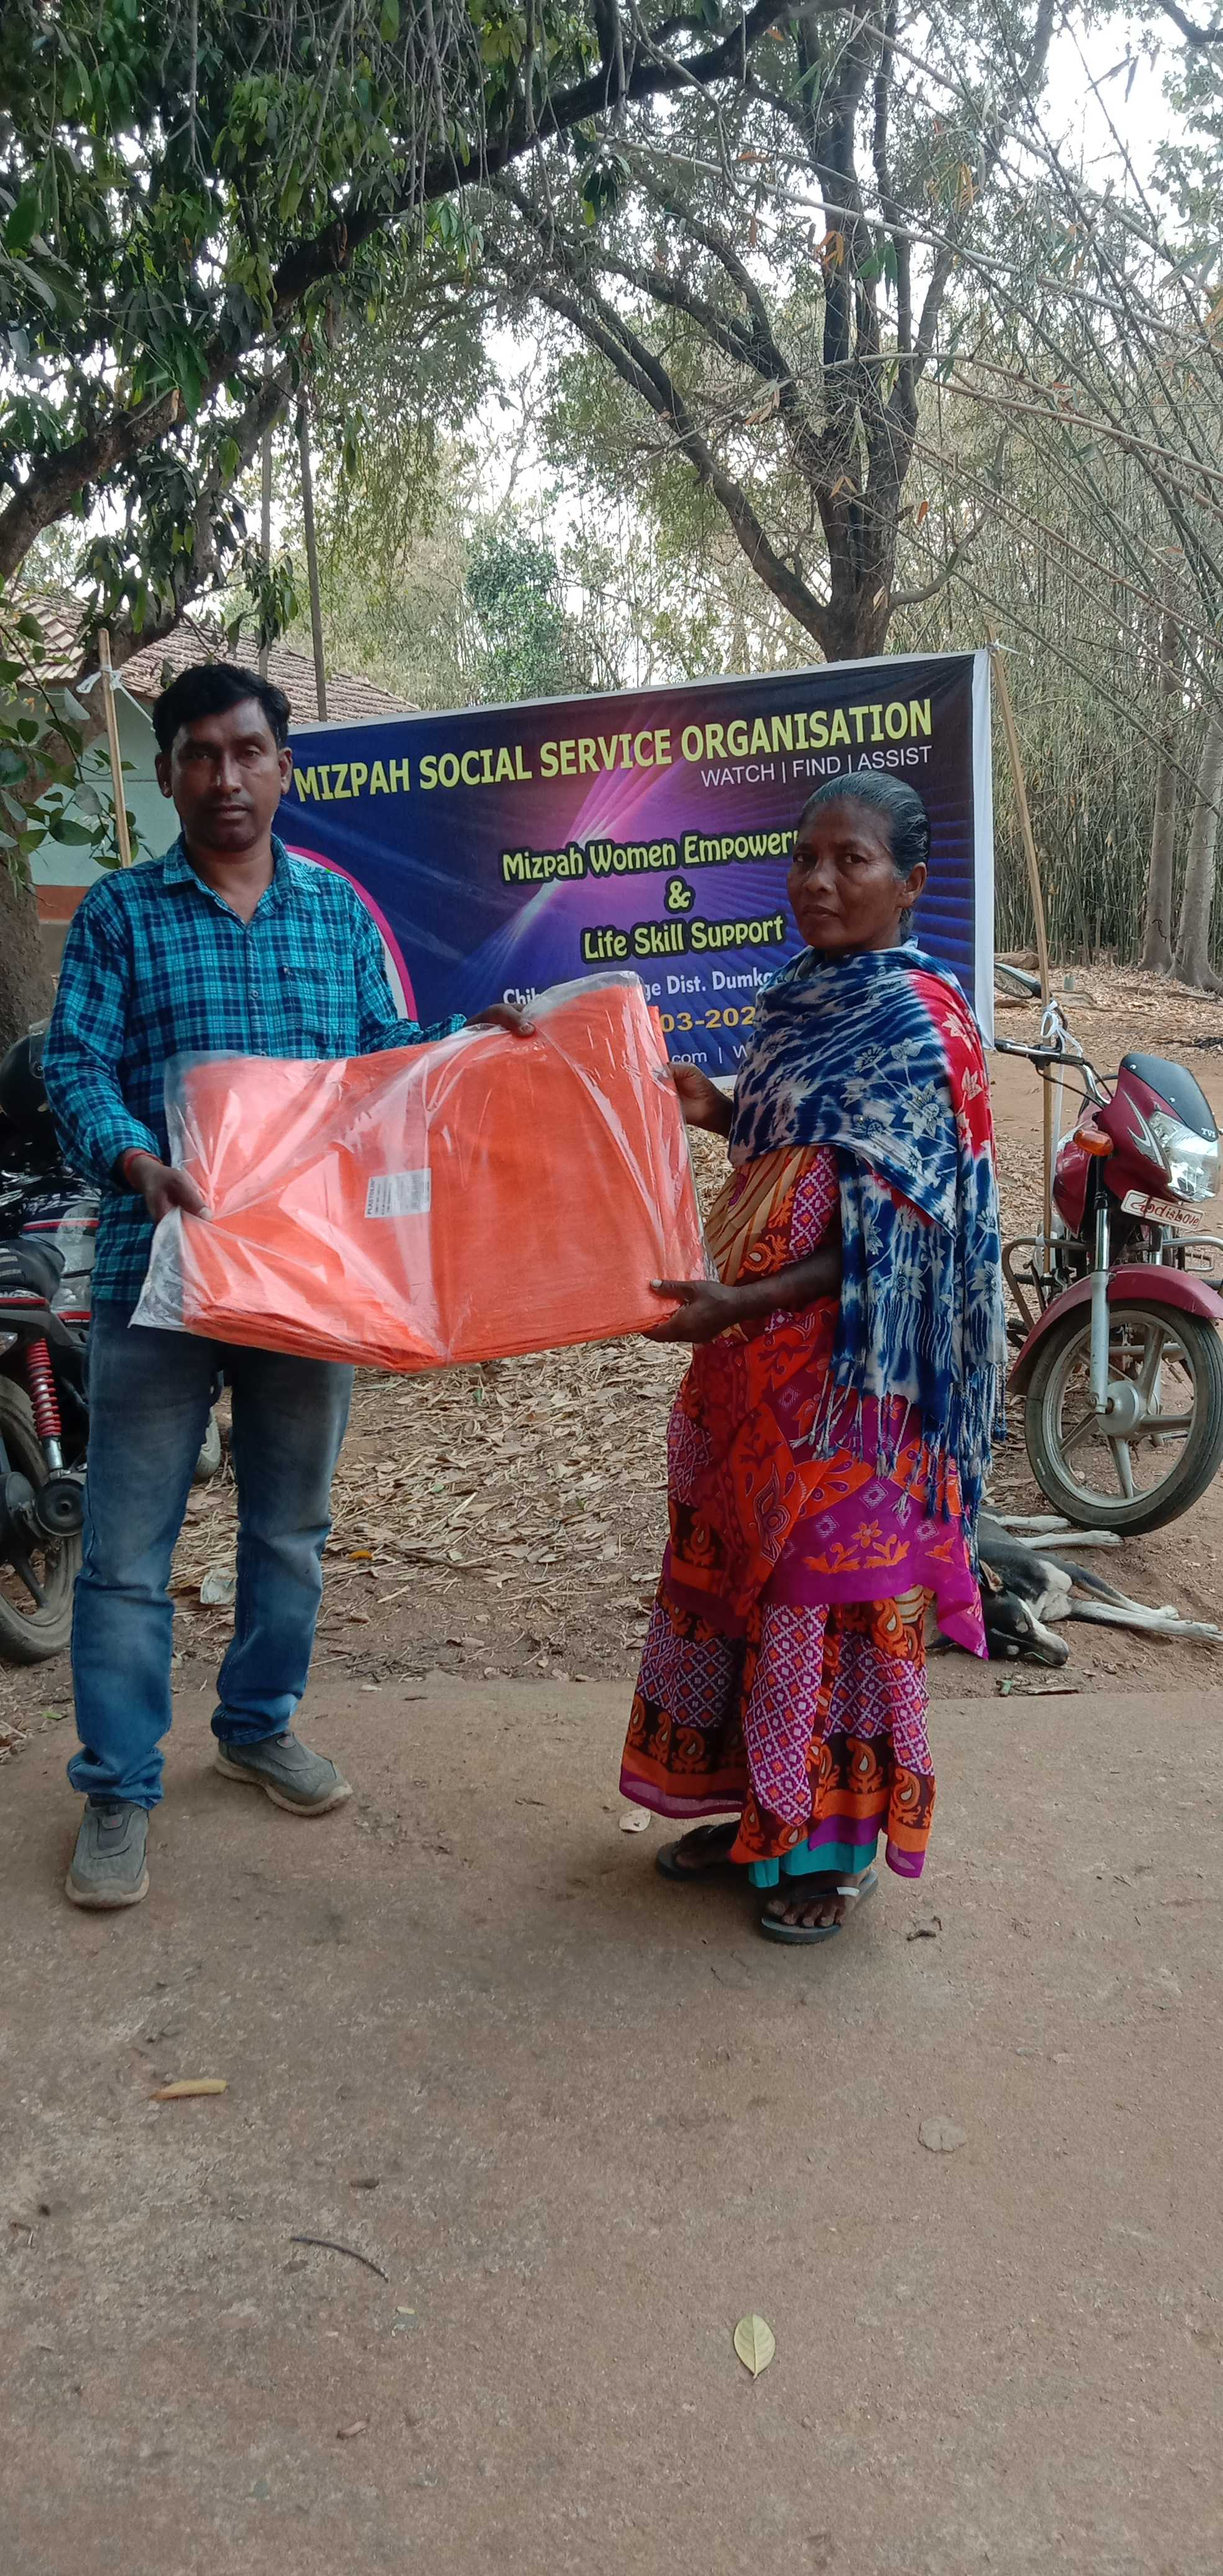 As part of women Empowerment & life skill support project of Mizpah Social Service Organization give away sewing machines , Plastic chair and mat for needy and vulnerable women at the village of Chirabani , ar Dhumka District , Jharkhand. on 21st March, 2021. MSSO is working for the needy and vulnerable to be self sustained in the length and breadth of India beyond cast, creed or religion. MSSO is very active with their works especially among women and children in the villages of Dumka district in Jharkhand.